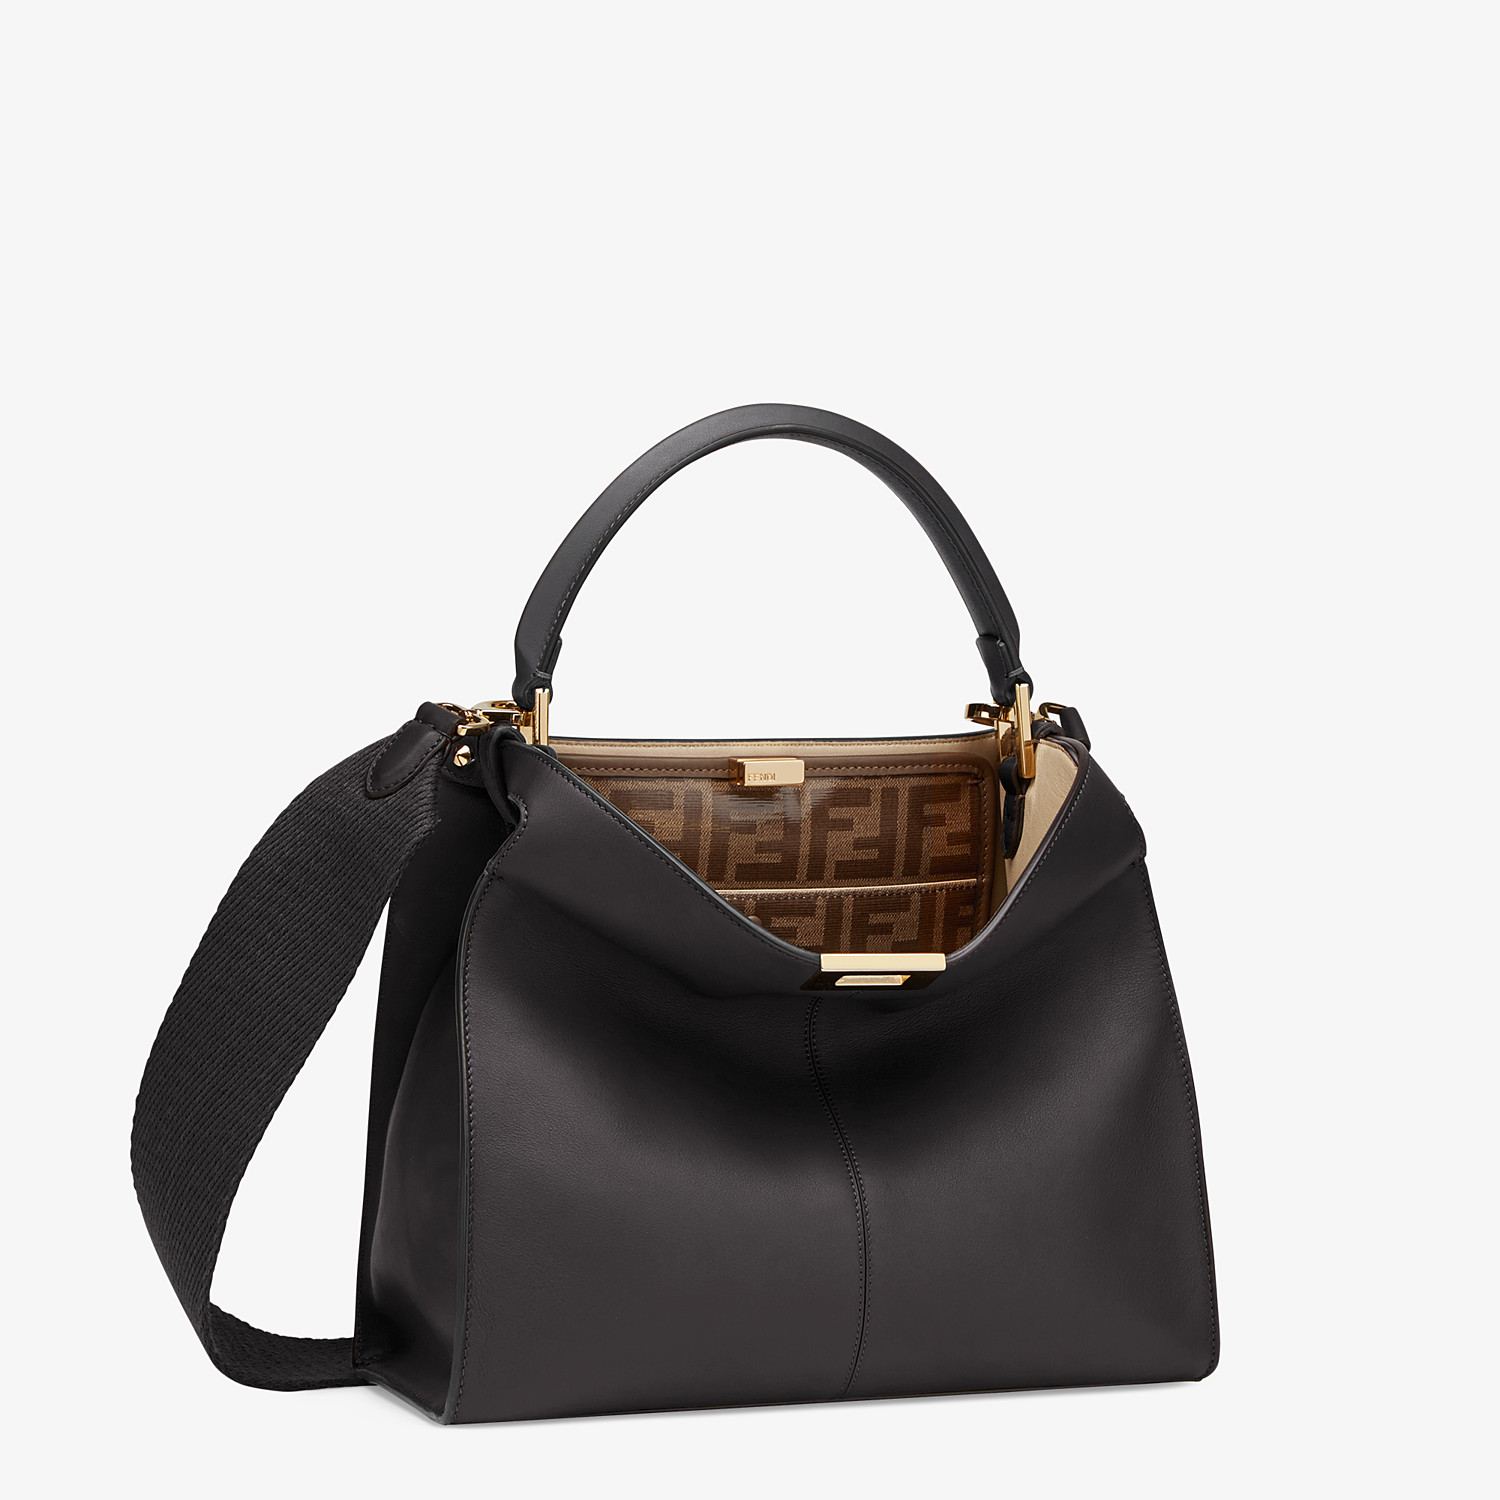 FENDI PEEKABOO X-LITE MEDIUM - Tasche aus Leder in Schwarz - view 3 detail